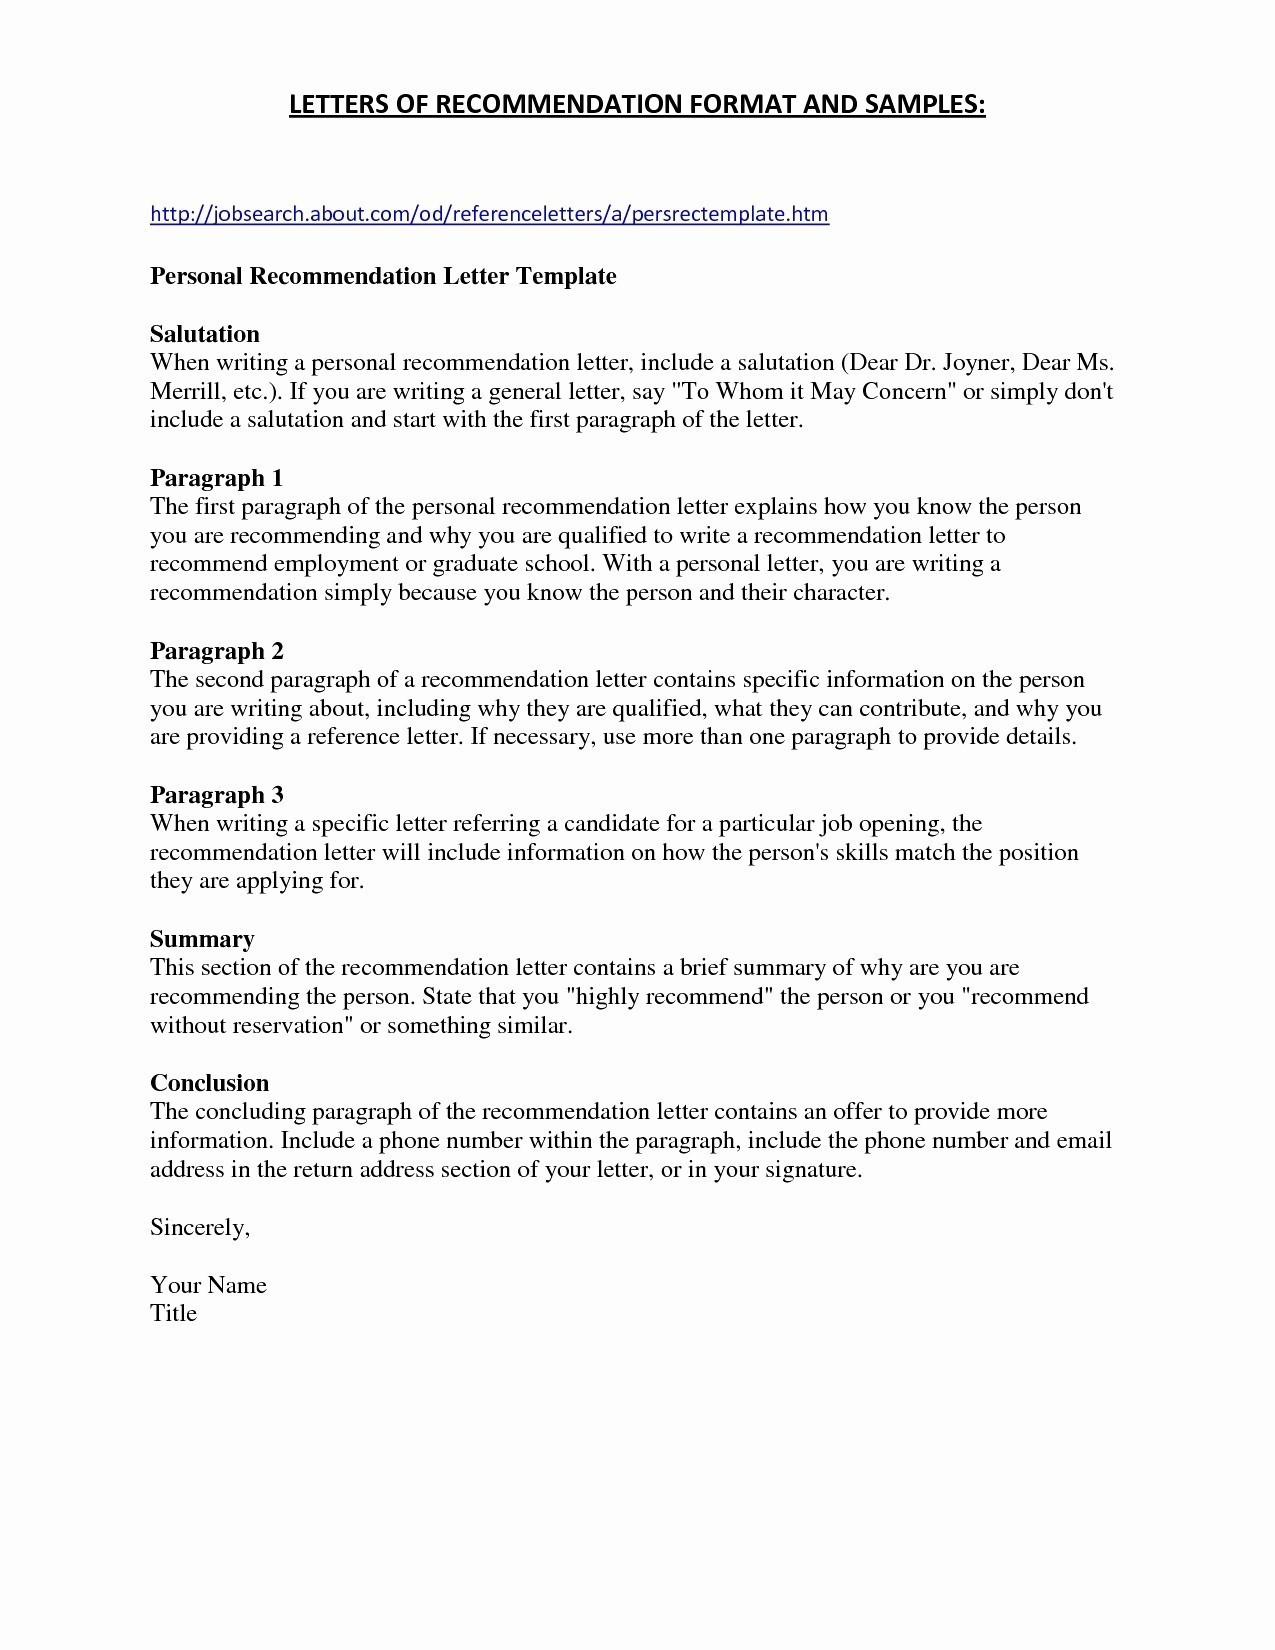 Brief Summary for Resume - 19 Brief Summary for Resume